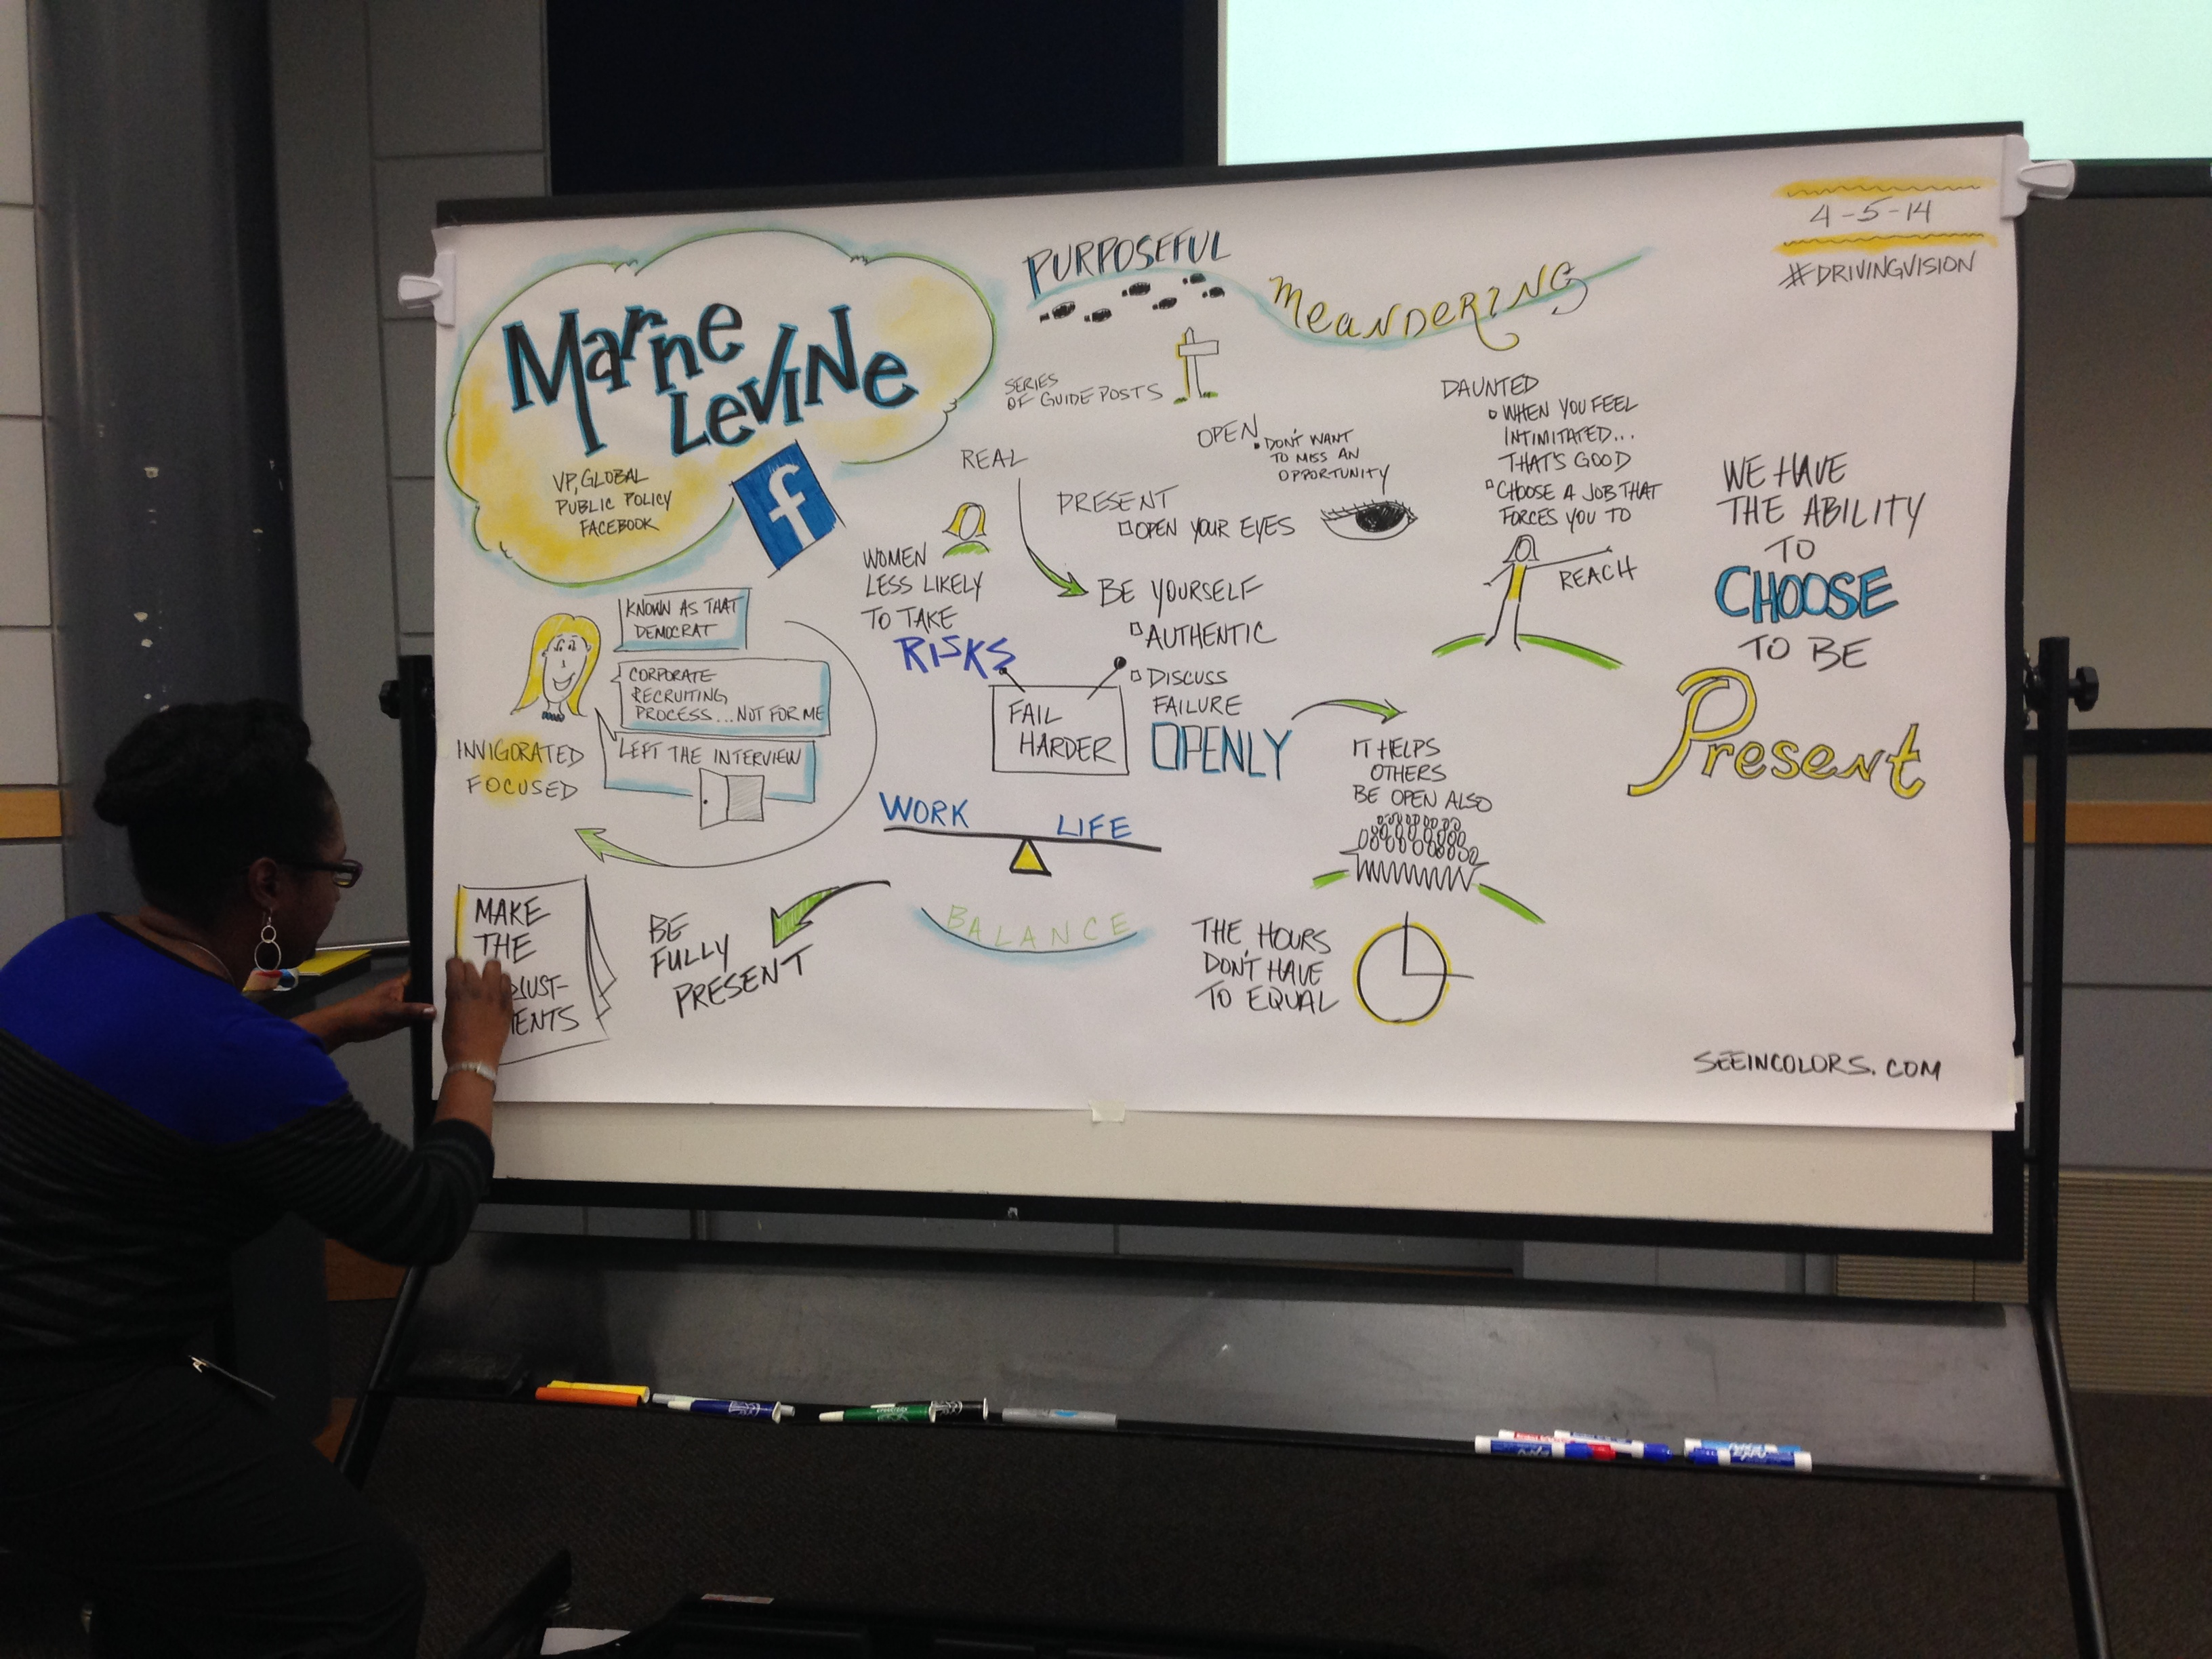 Marne Levine, Facebook, Graphic Recording, #GWWIB, George Washington University, Washington DC